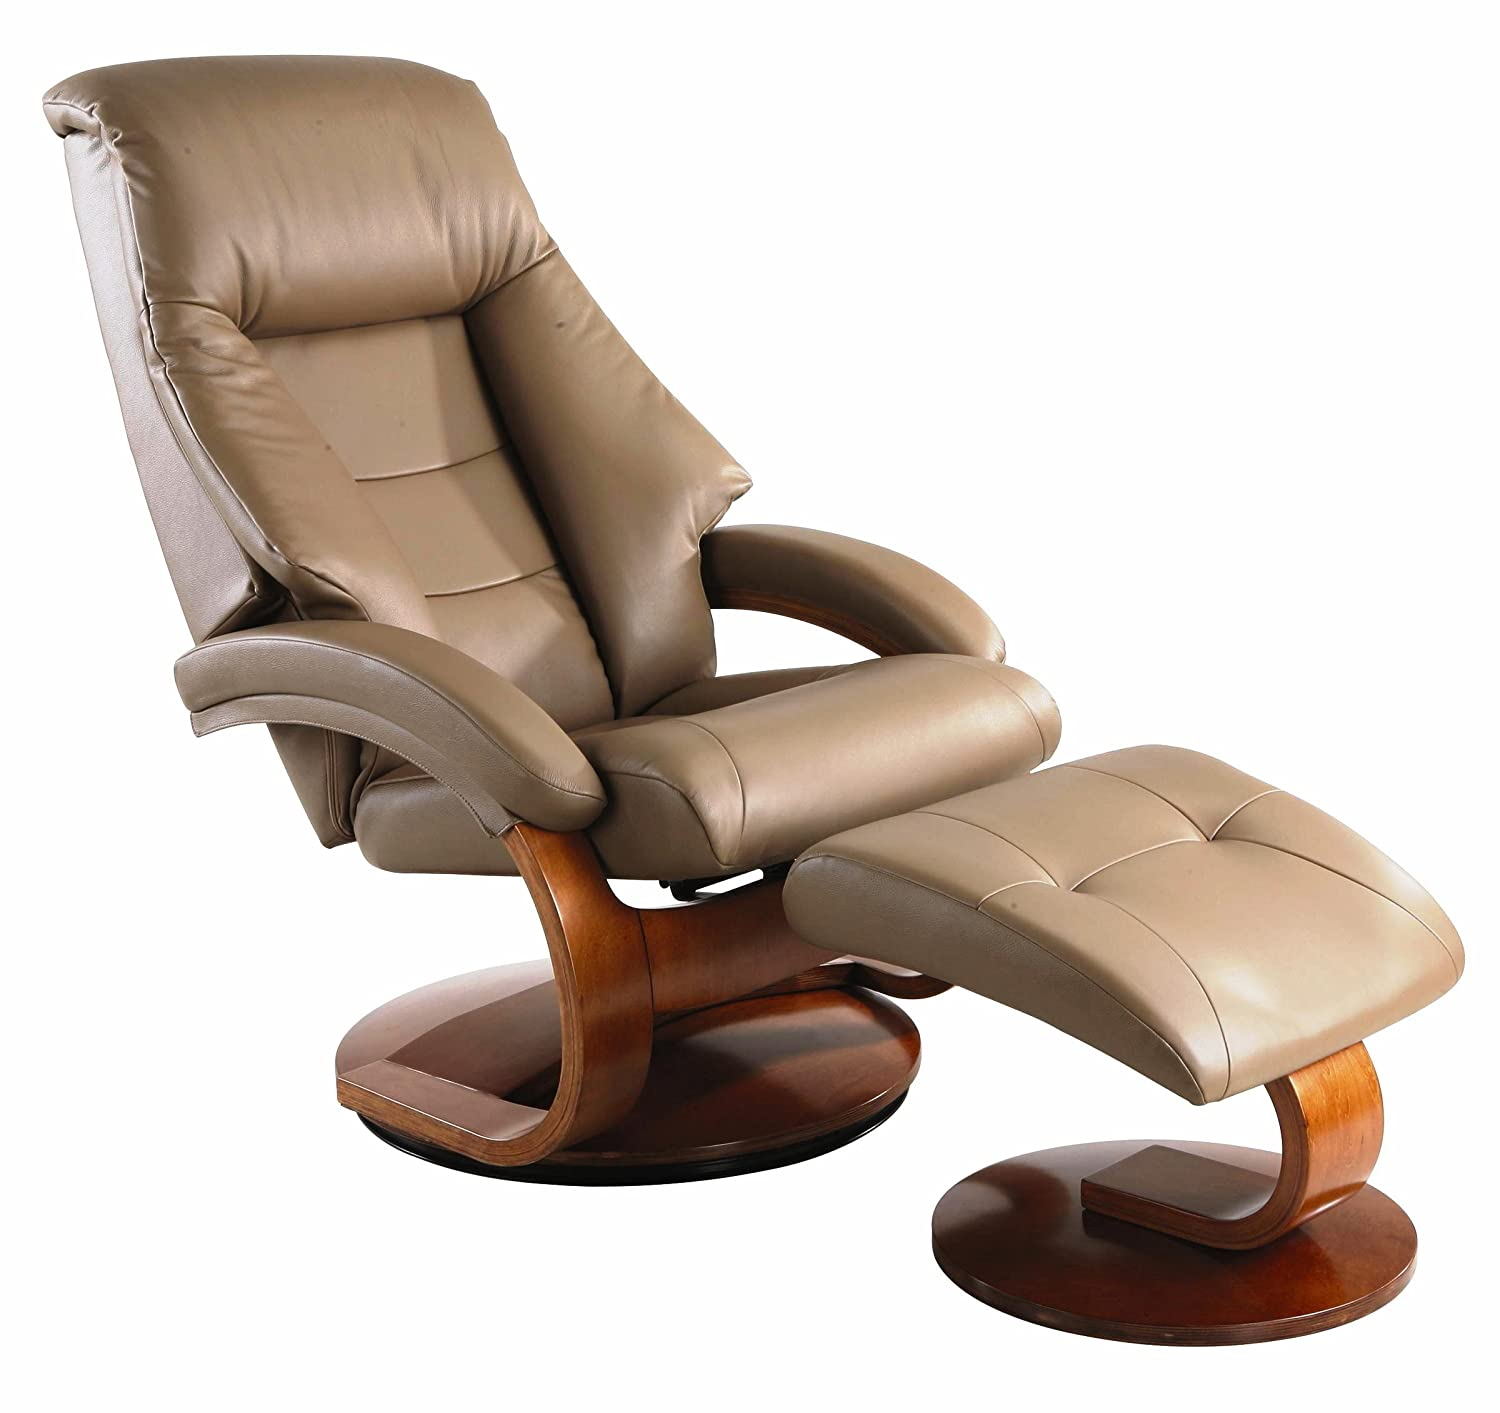 Awesome Comfort Chair Euro Style Recliner With Ottoman In Top Grain Leather,  Sand/Walnut